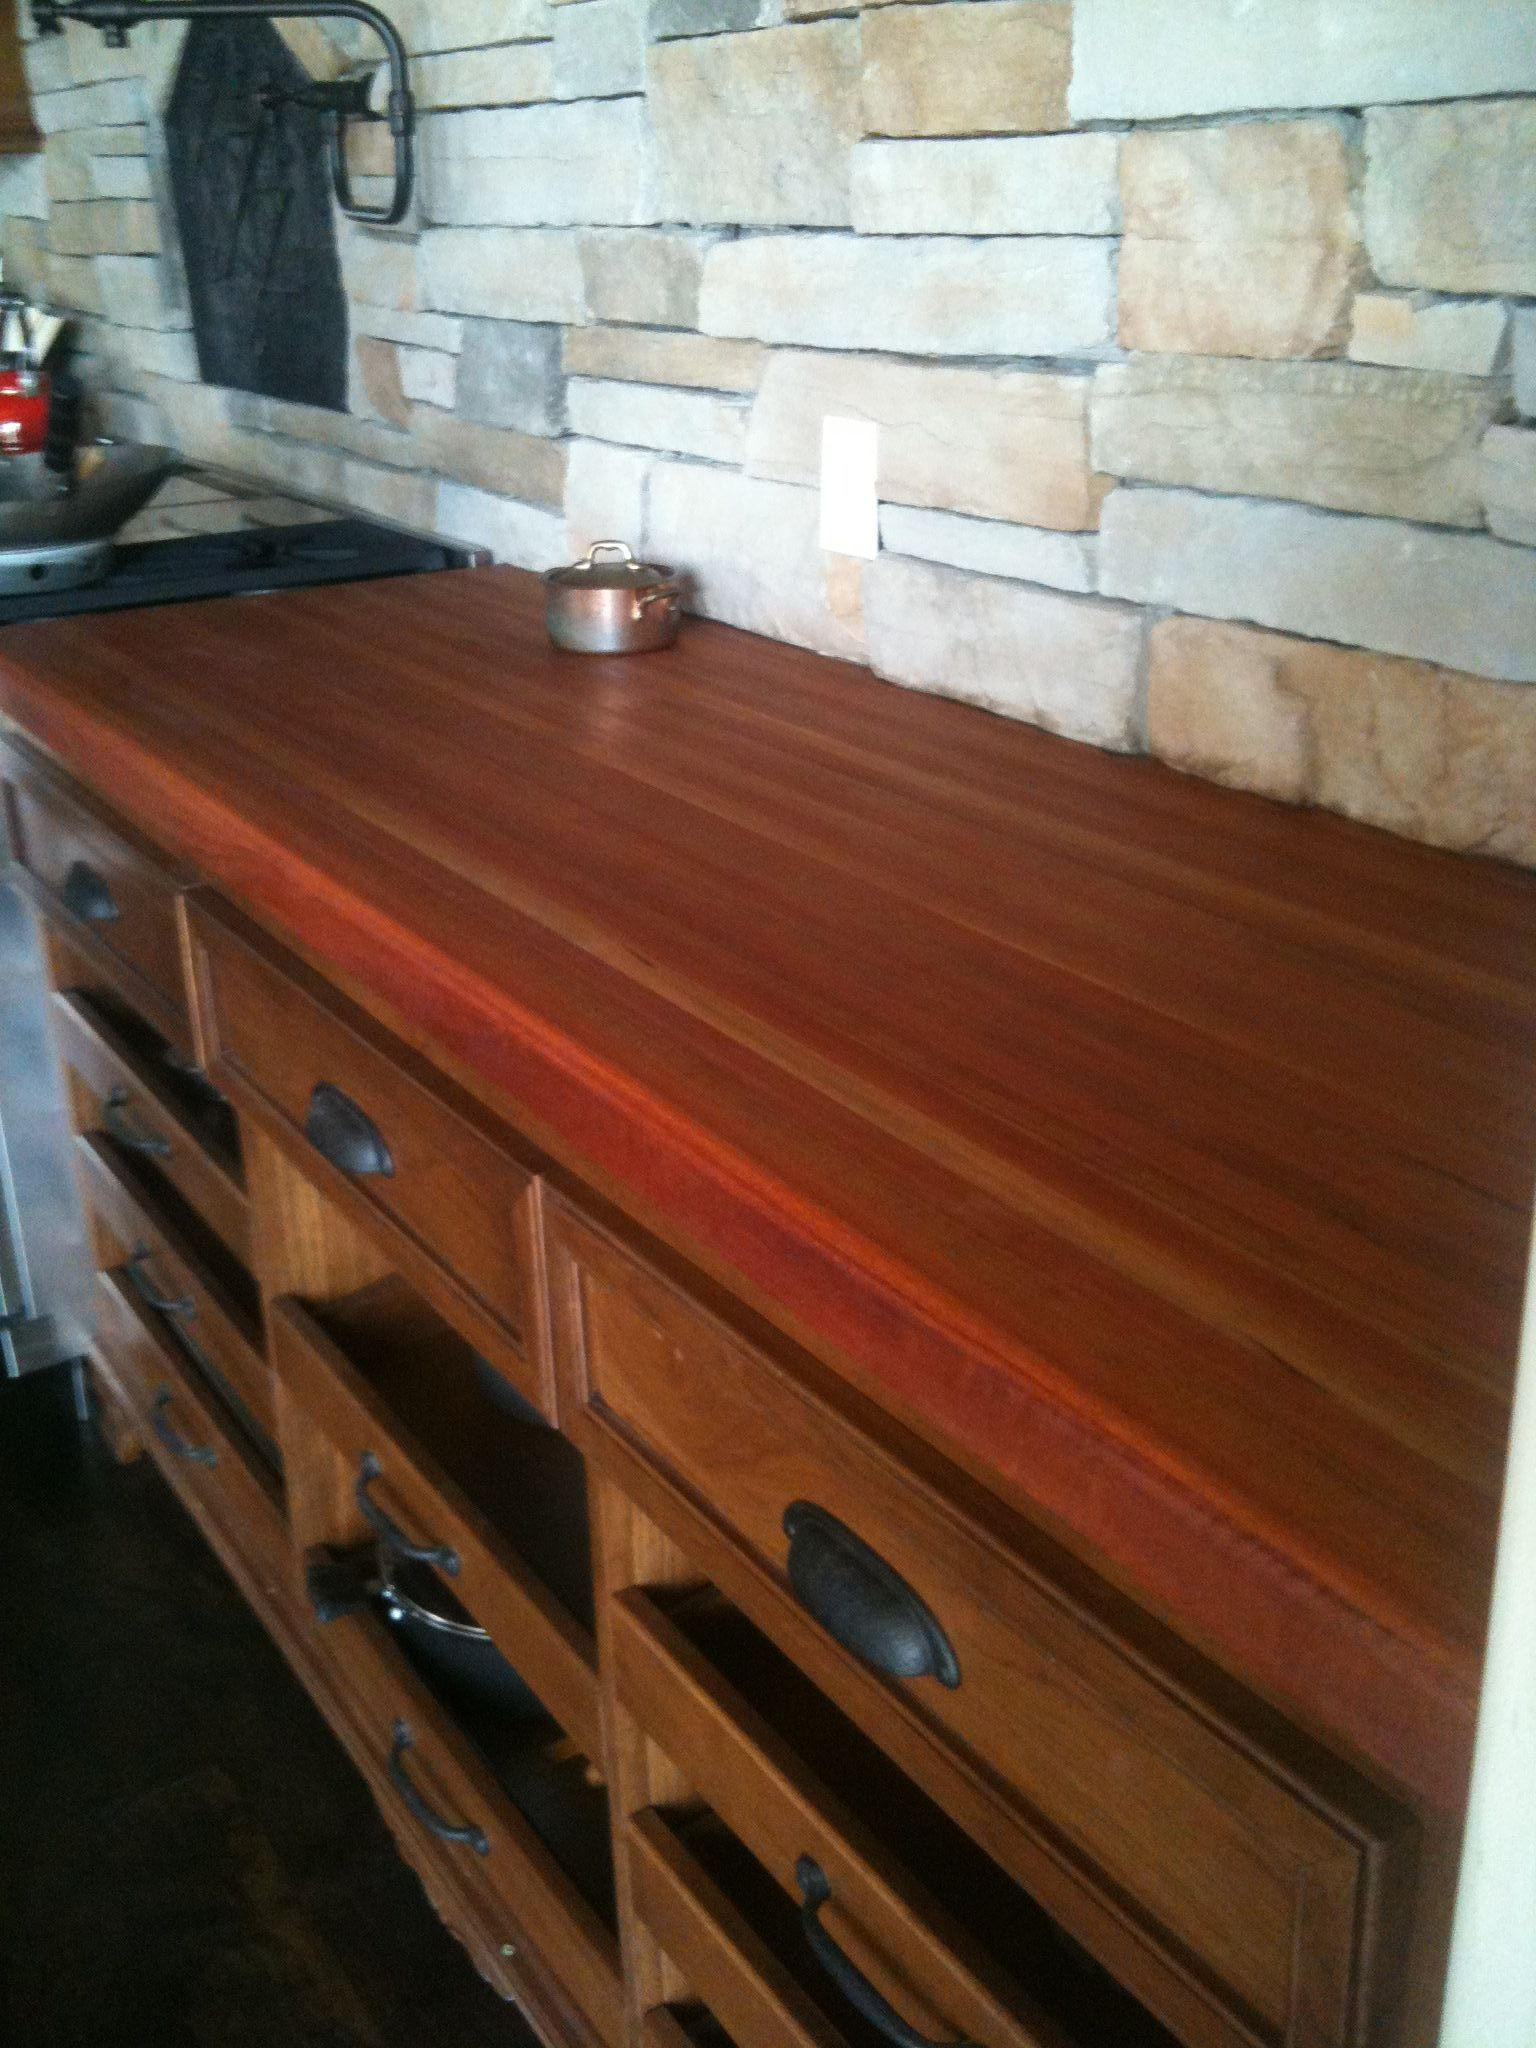 Lyptus And American Black Cherry Butcher Block Countertop By A R T T Wood Manufacturing In Oklahoma City Will S Butcher Block Countertops Butcher Block Wood